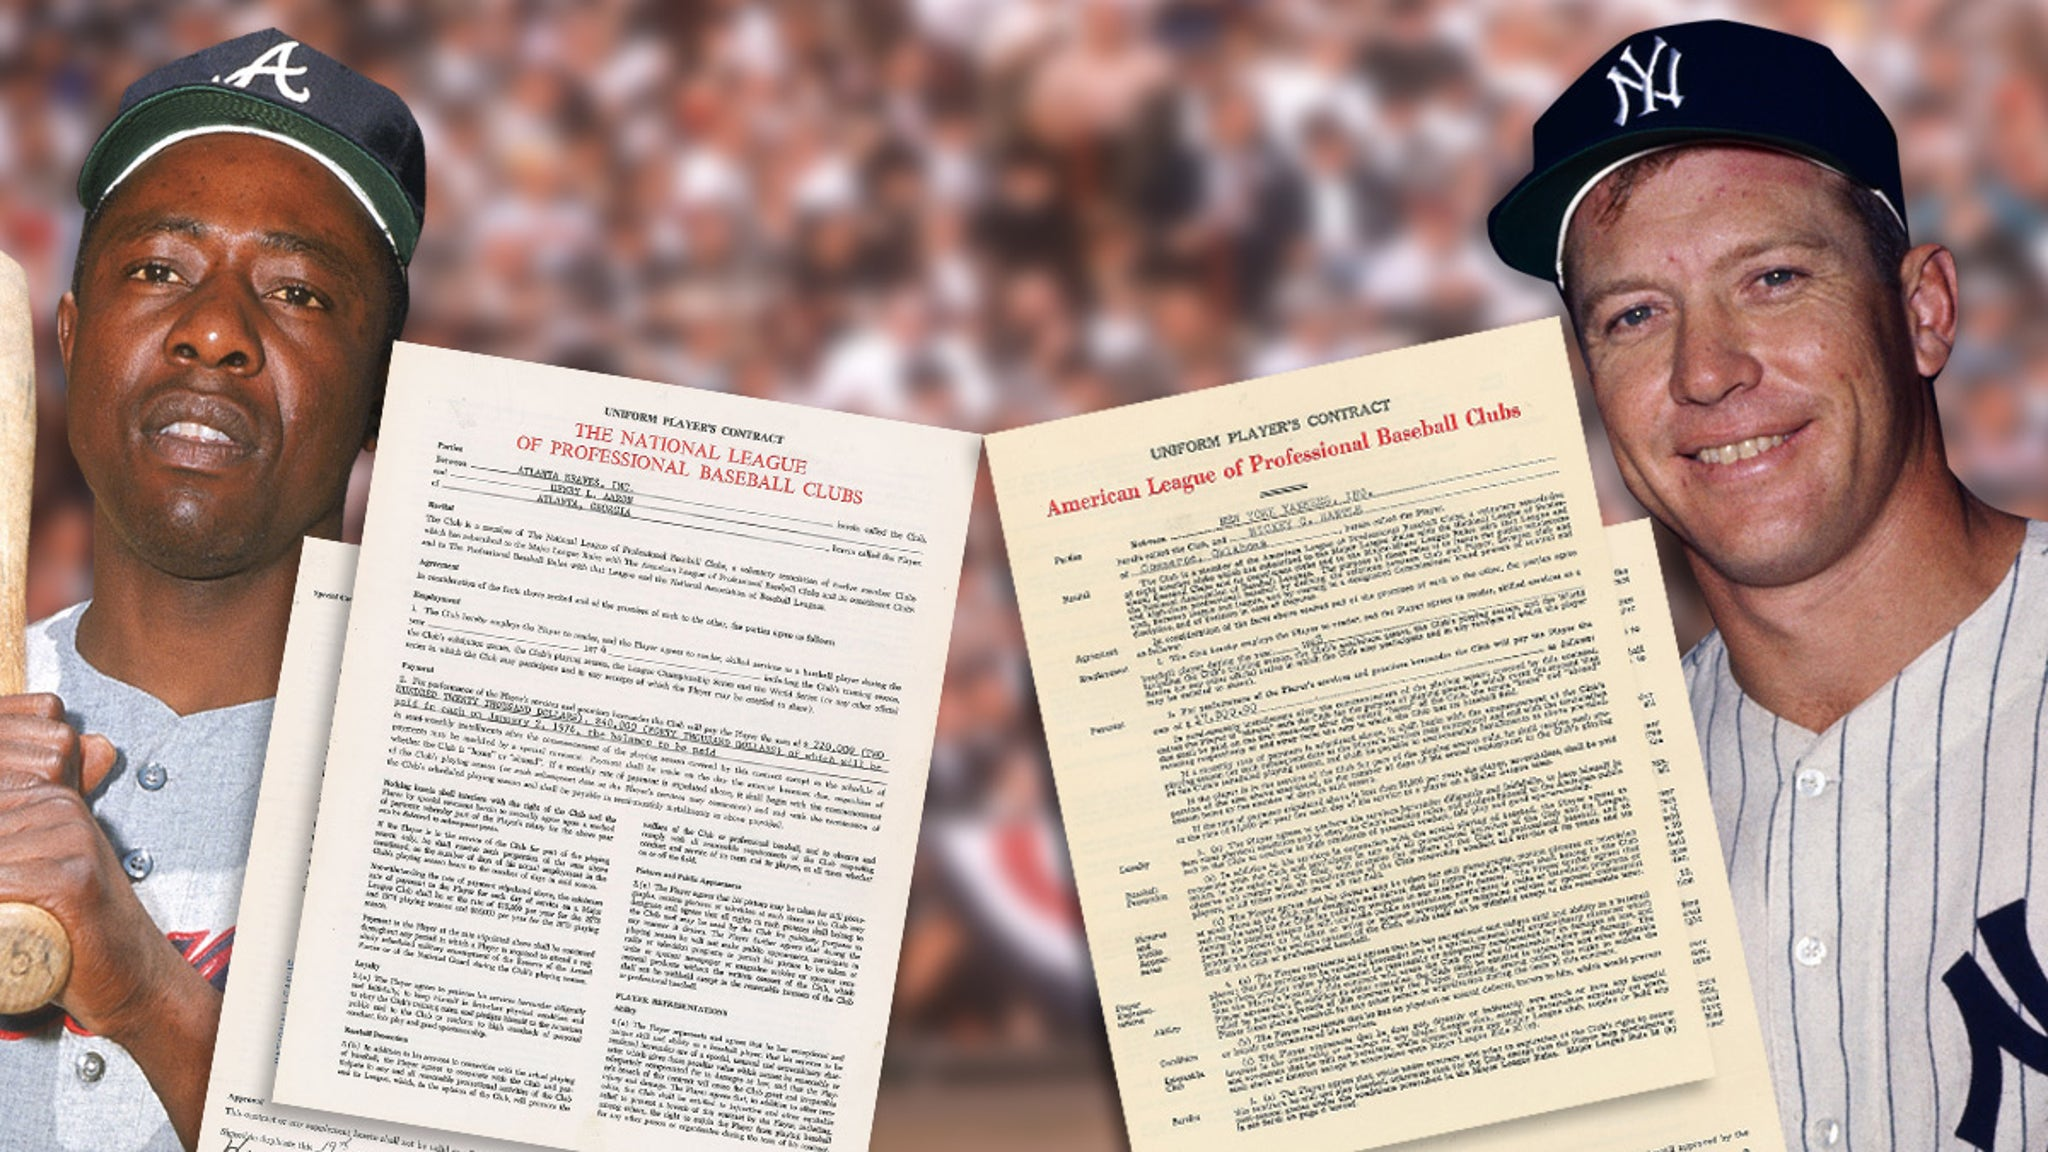 Mickey Mantle, Hank Aaron Signed Contracts Hit Auction, Could Fetch Thousands!